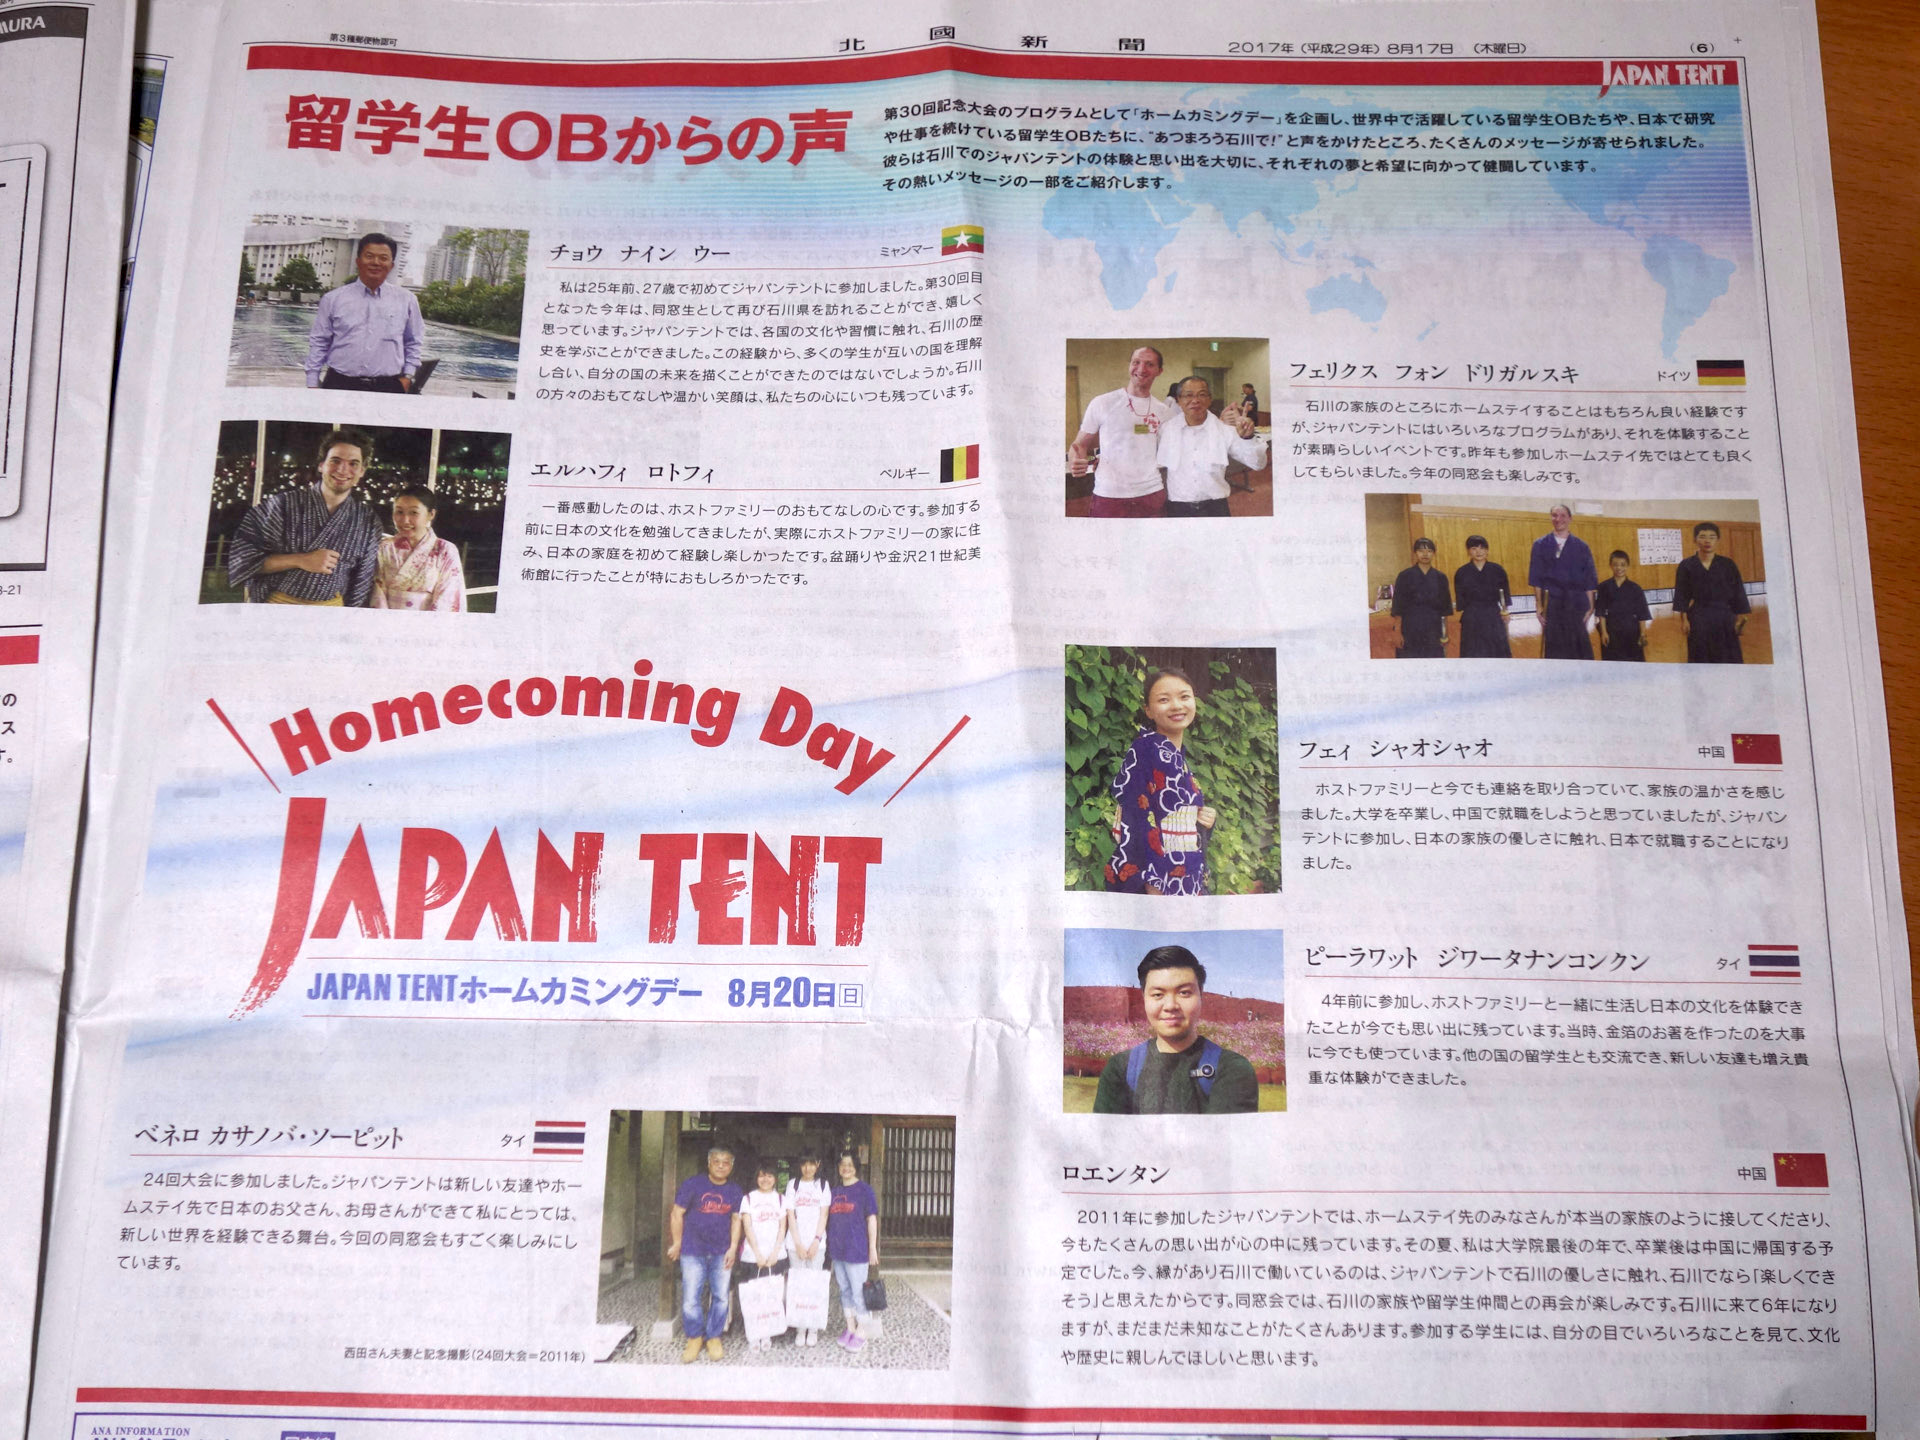 The special anniversary issue of Hokkoku Shinbun, the main sponsor of Japan TENT.